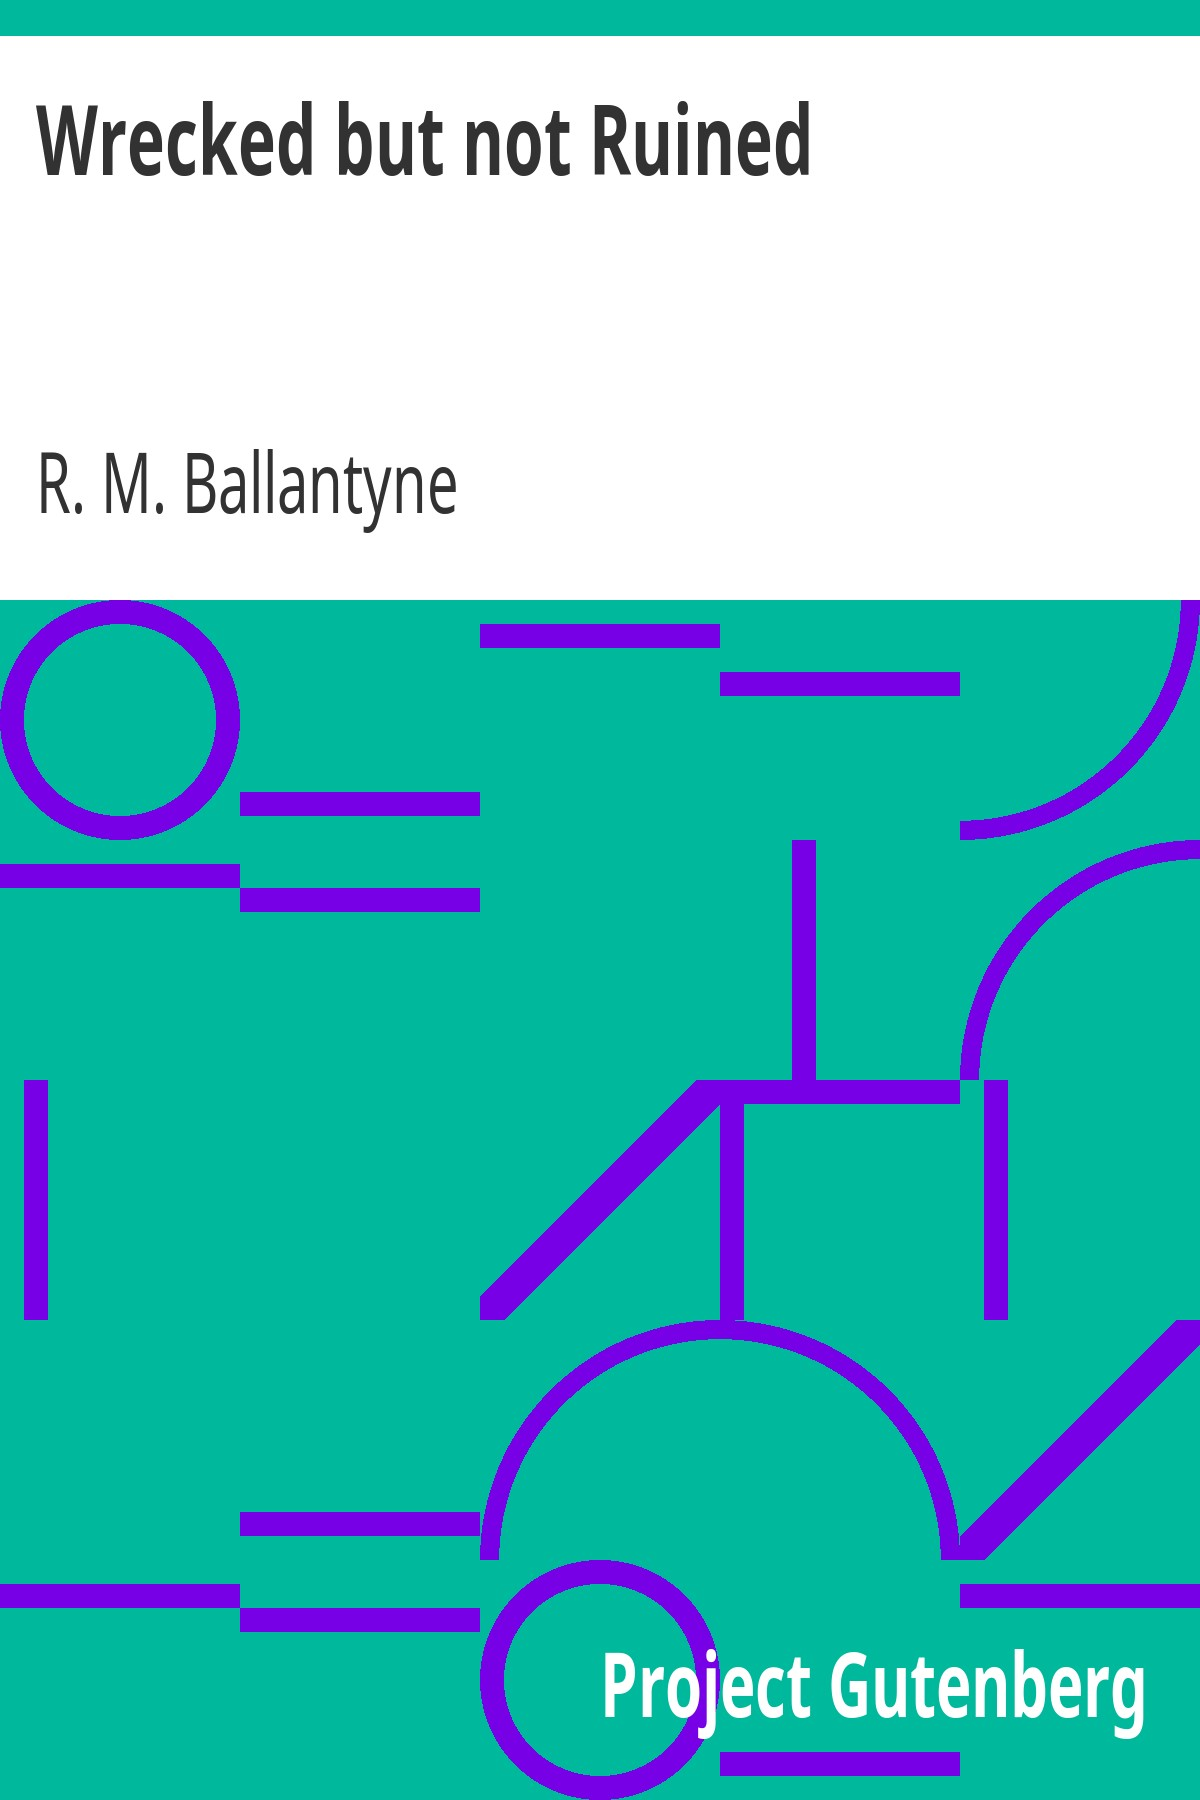 R. M. Ballantyne Wrecked but not Ruined